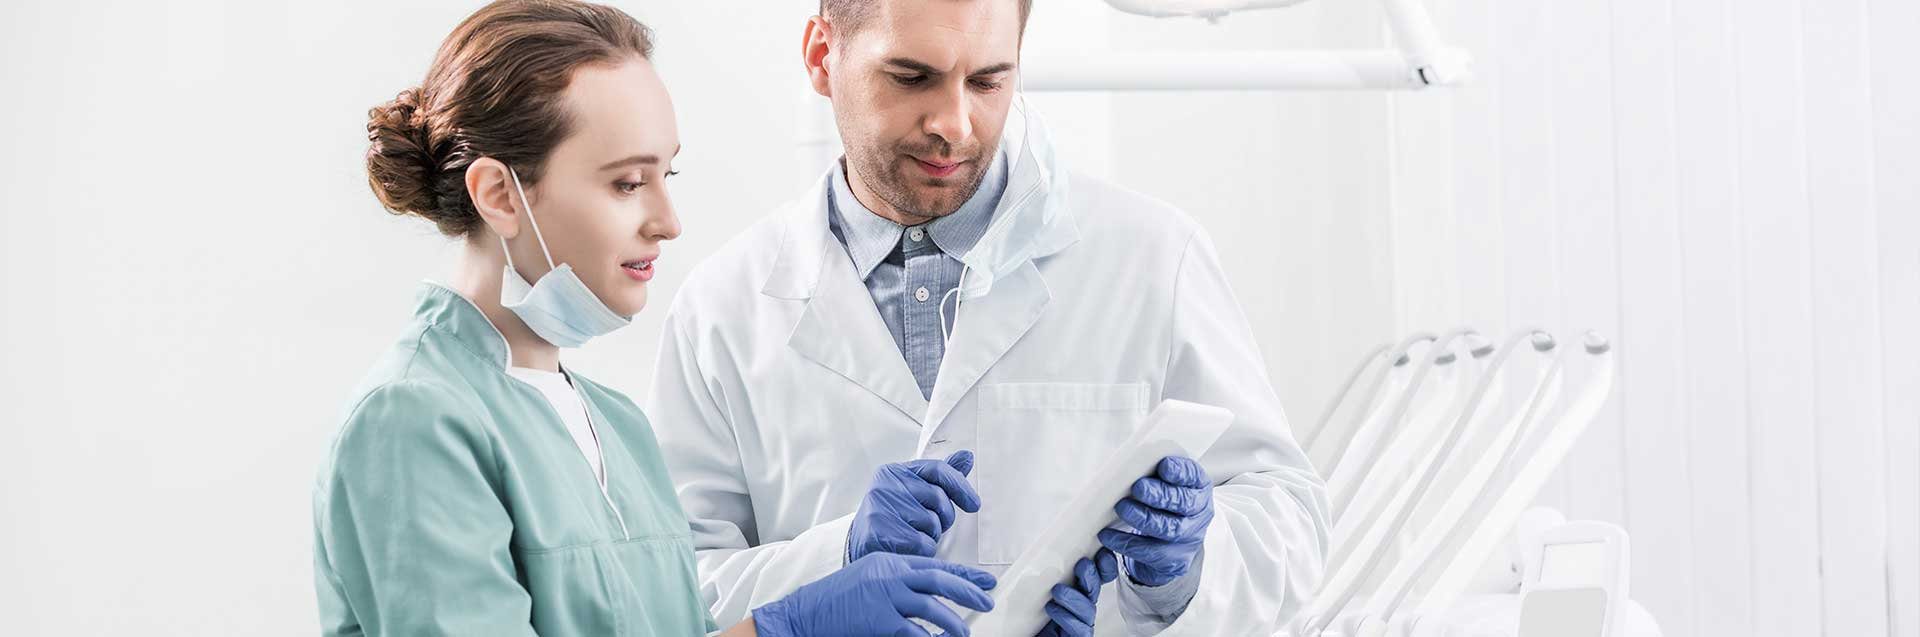 Dentists standing and looking at digital tablet in dental clinic